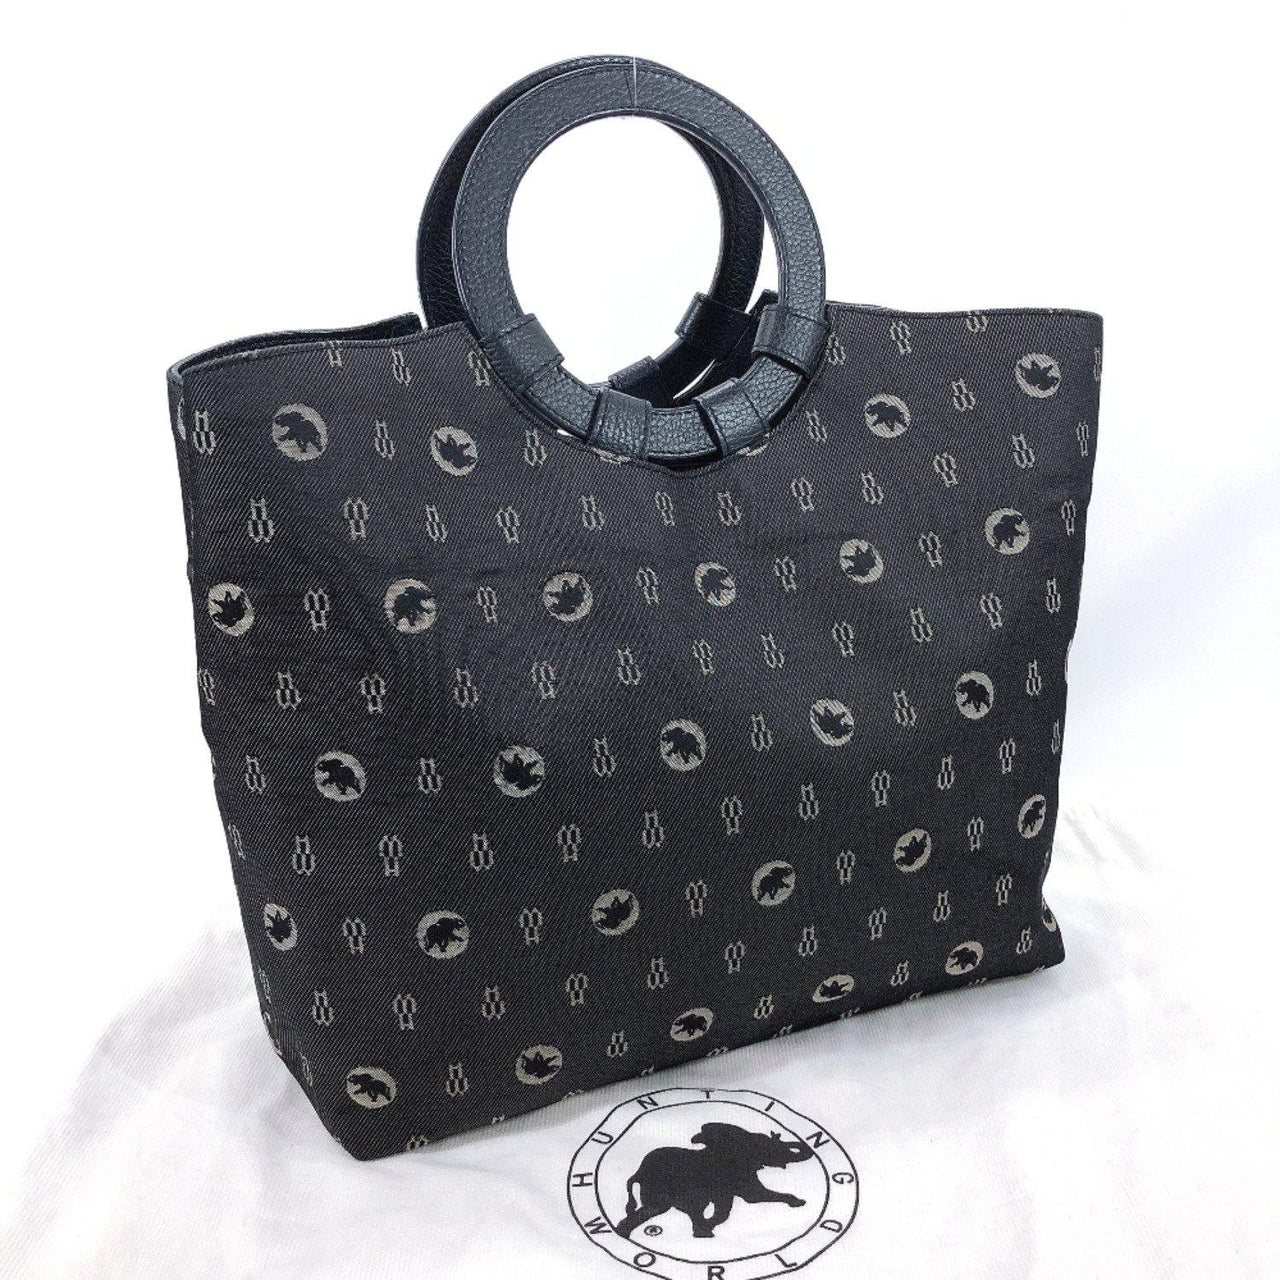 HUNTING WORLD Handbag 070602 canvas/leather Navy Women Used - JP-BRANDS.com